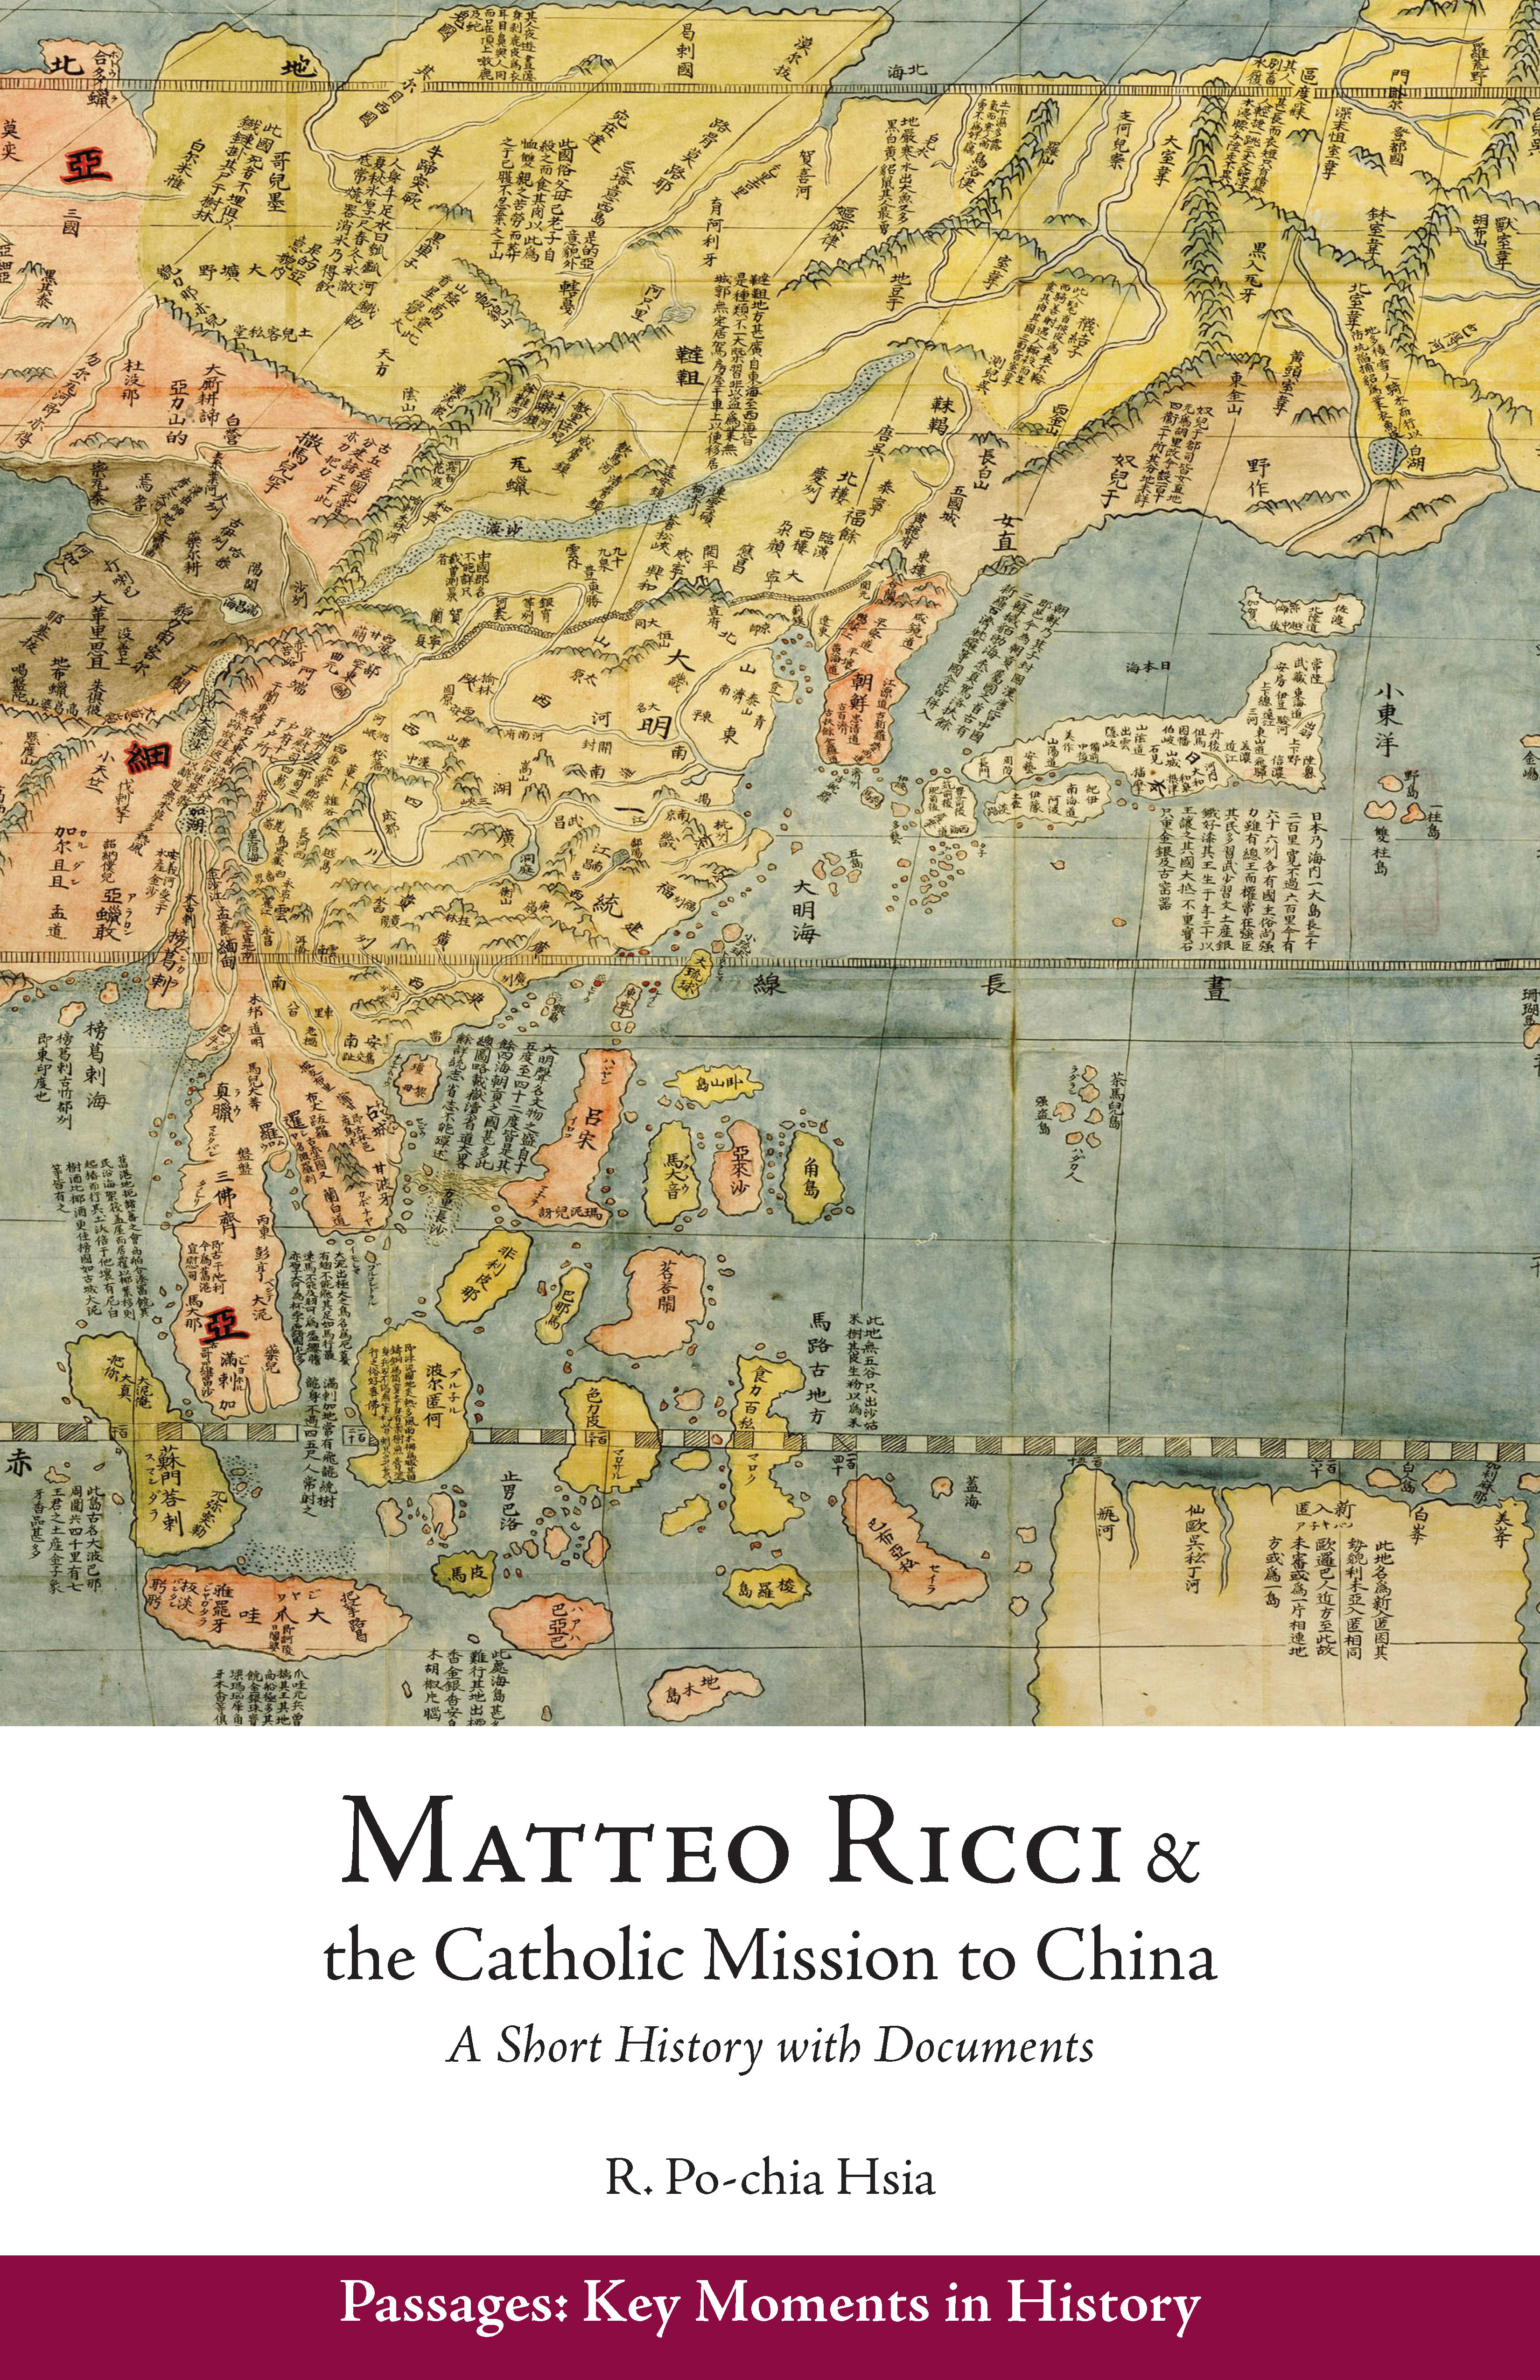 1583-1610 Matteo Ricci and the Catholic Mission to China A Short History with Documents